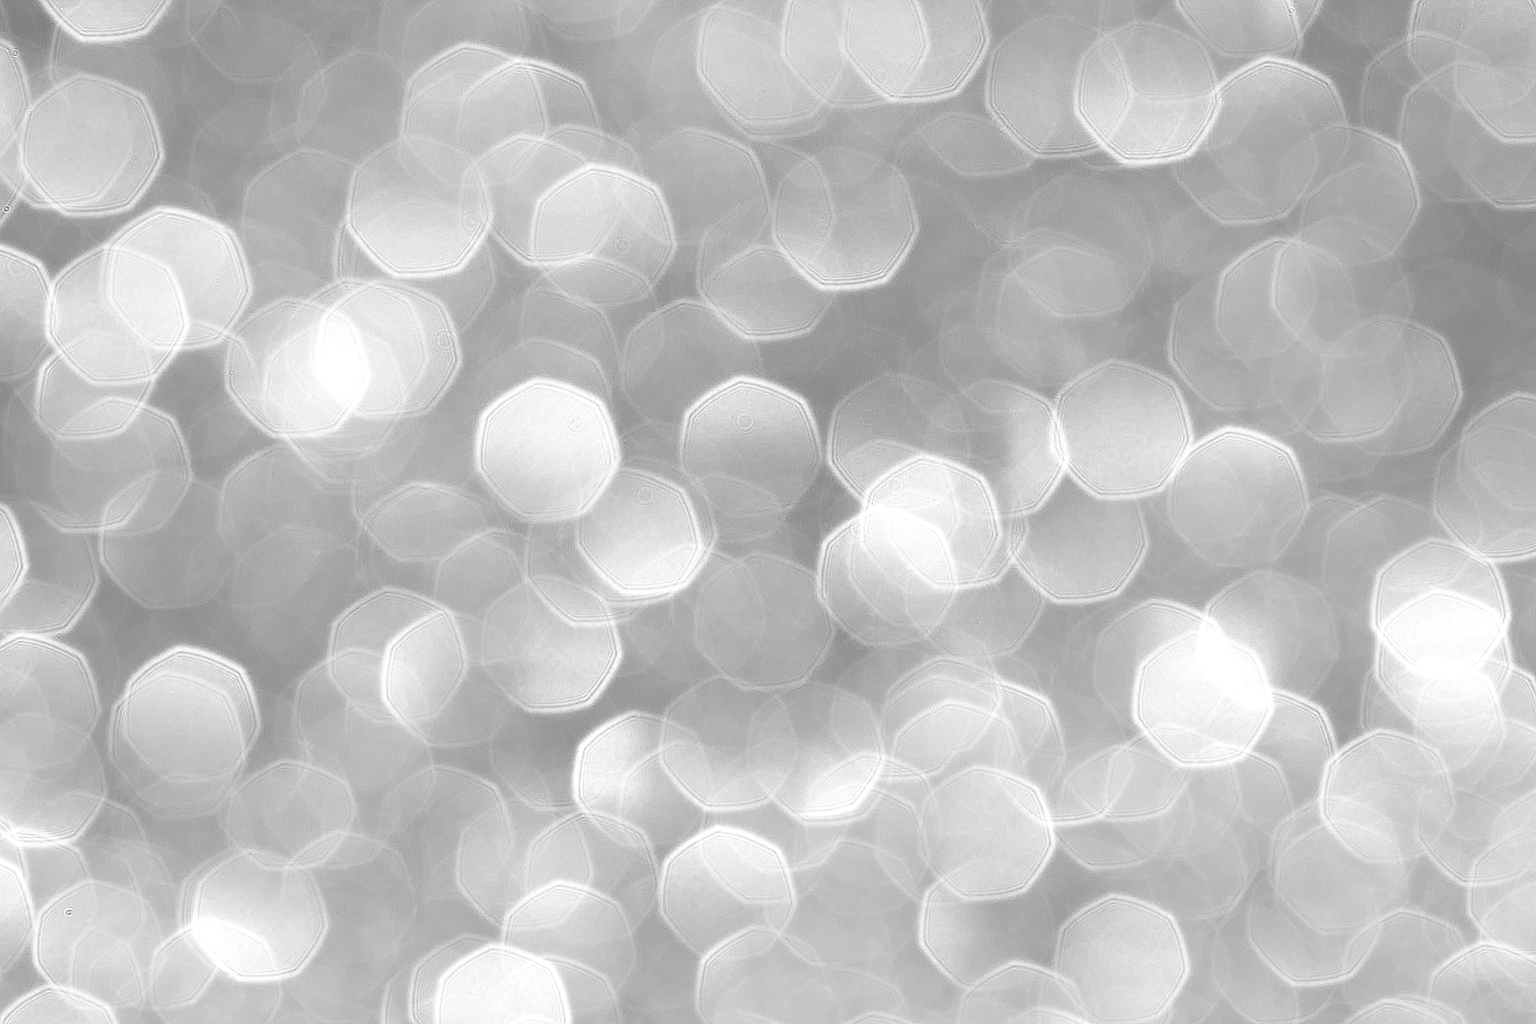 Silver Bokeh | Feel free to use wherever. Enjoy. | By: Lady-Ro | Flickr - Photo Sharing!